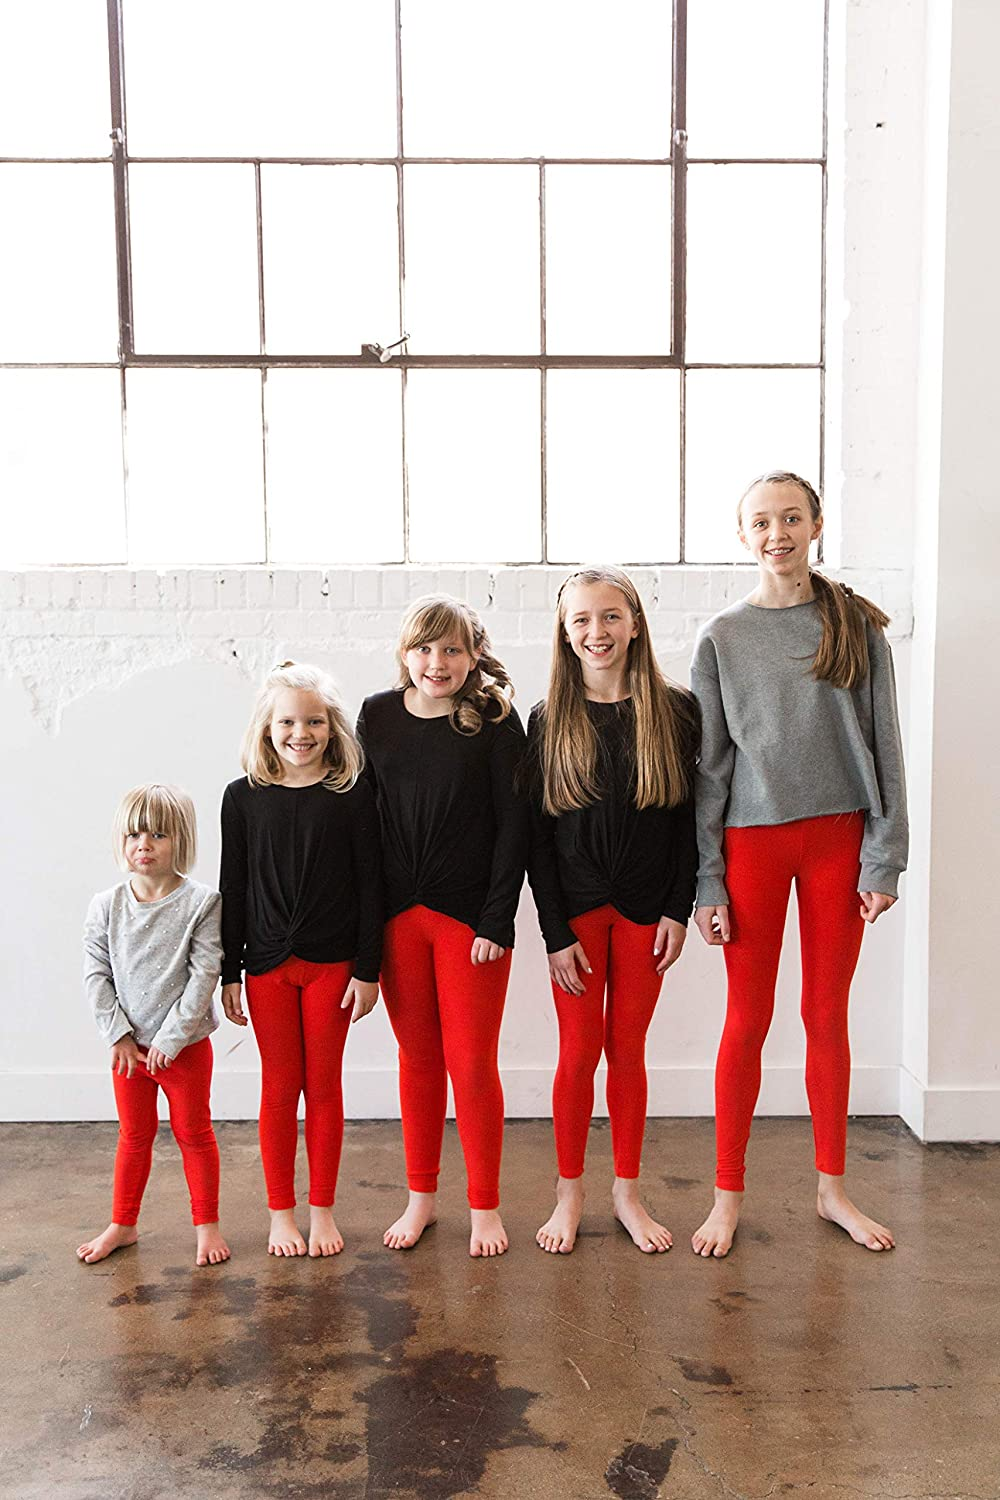 POPINJAY Premium Soft Girls Leggings Best High Waist Ankle Length 4-Way Stretchy Leggings for Toddlers and Big Kids